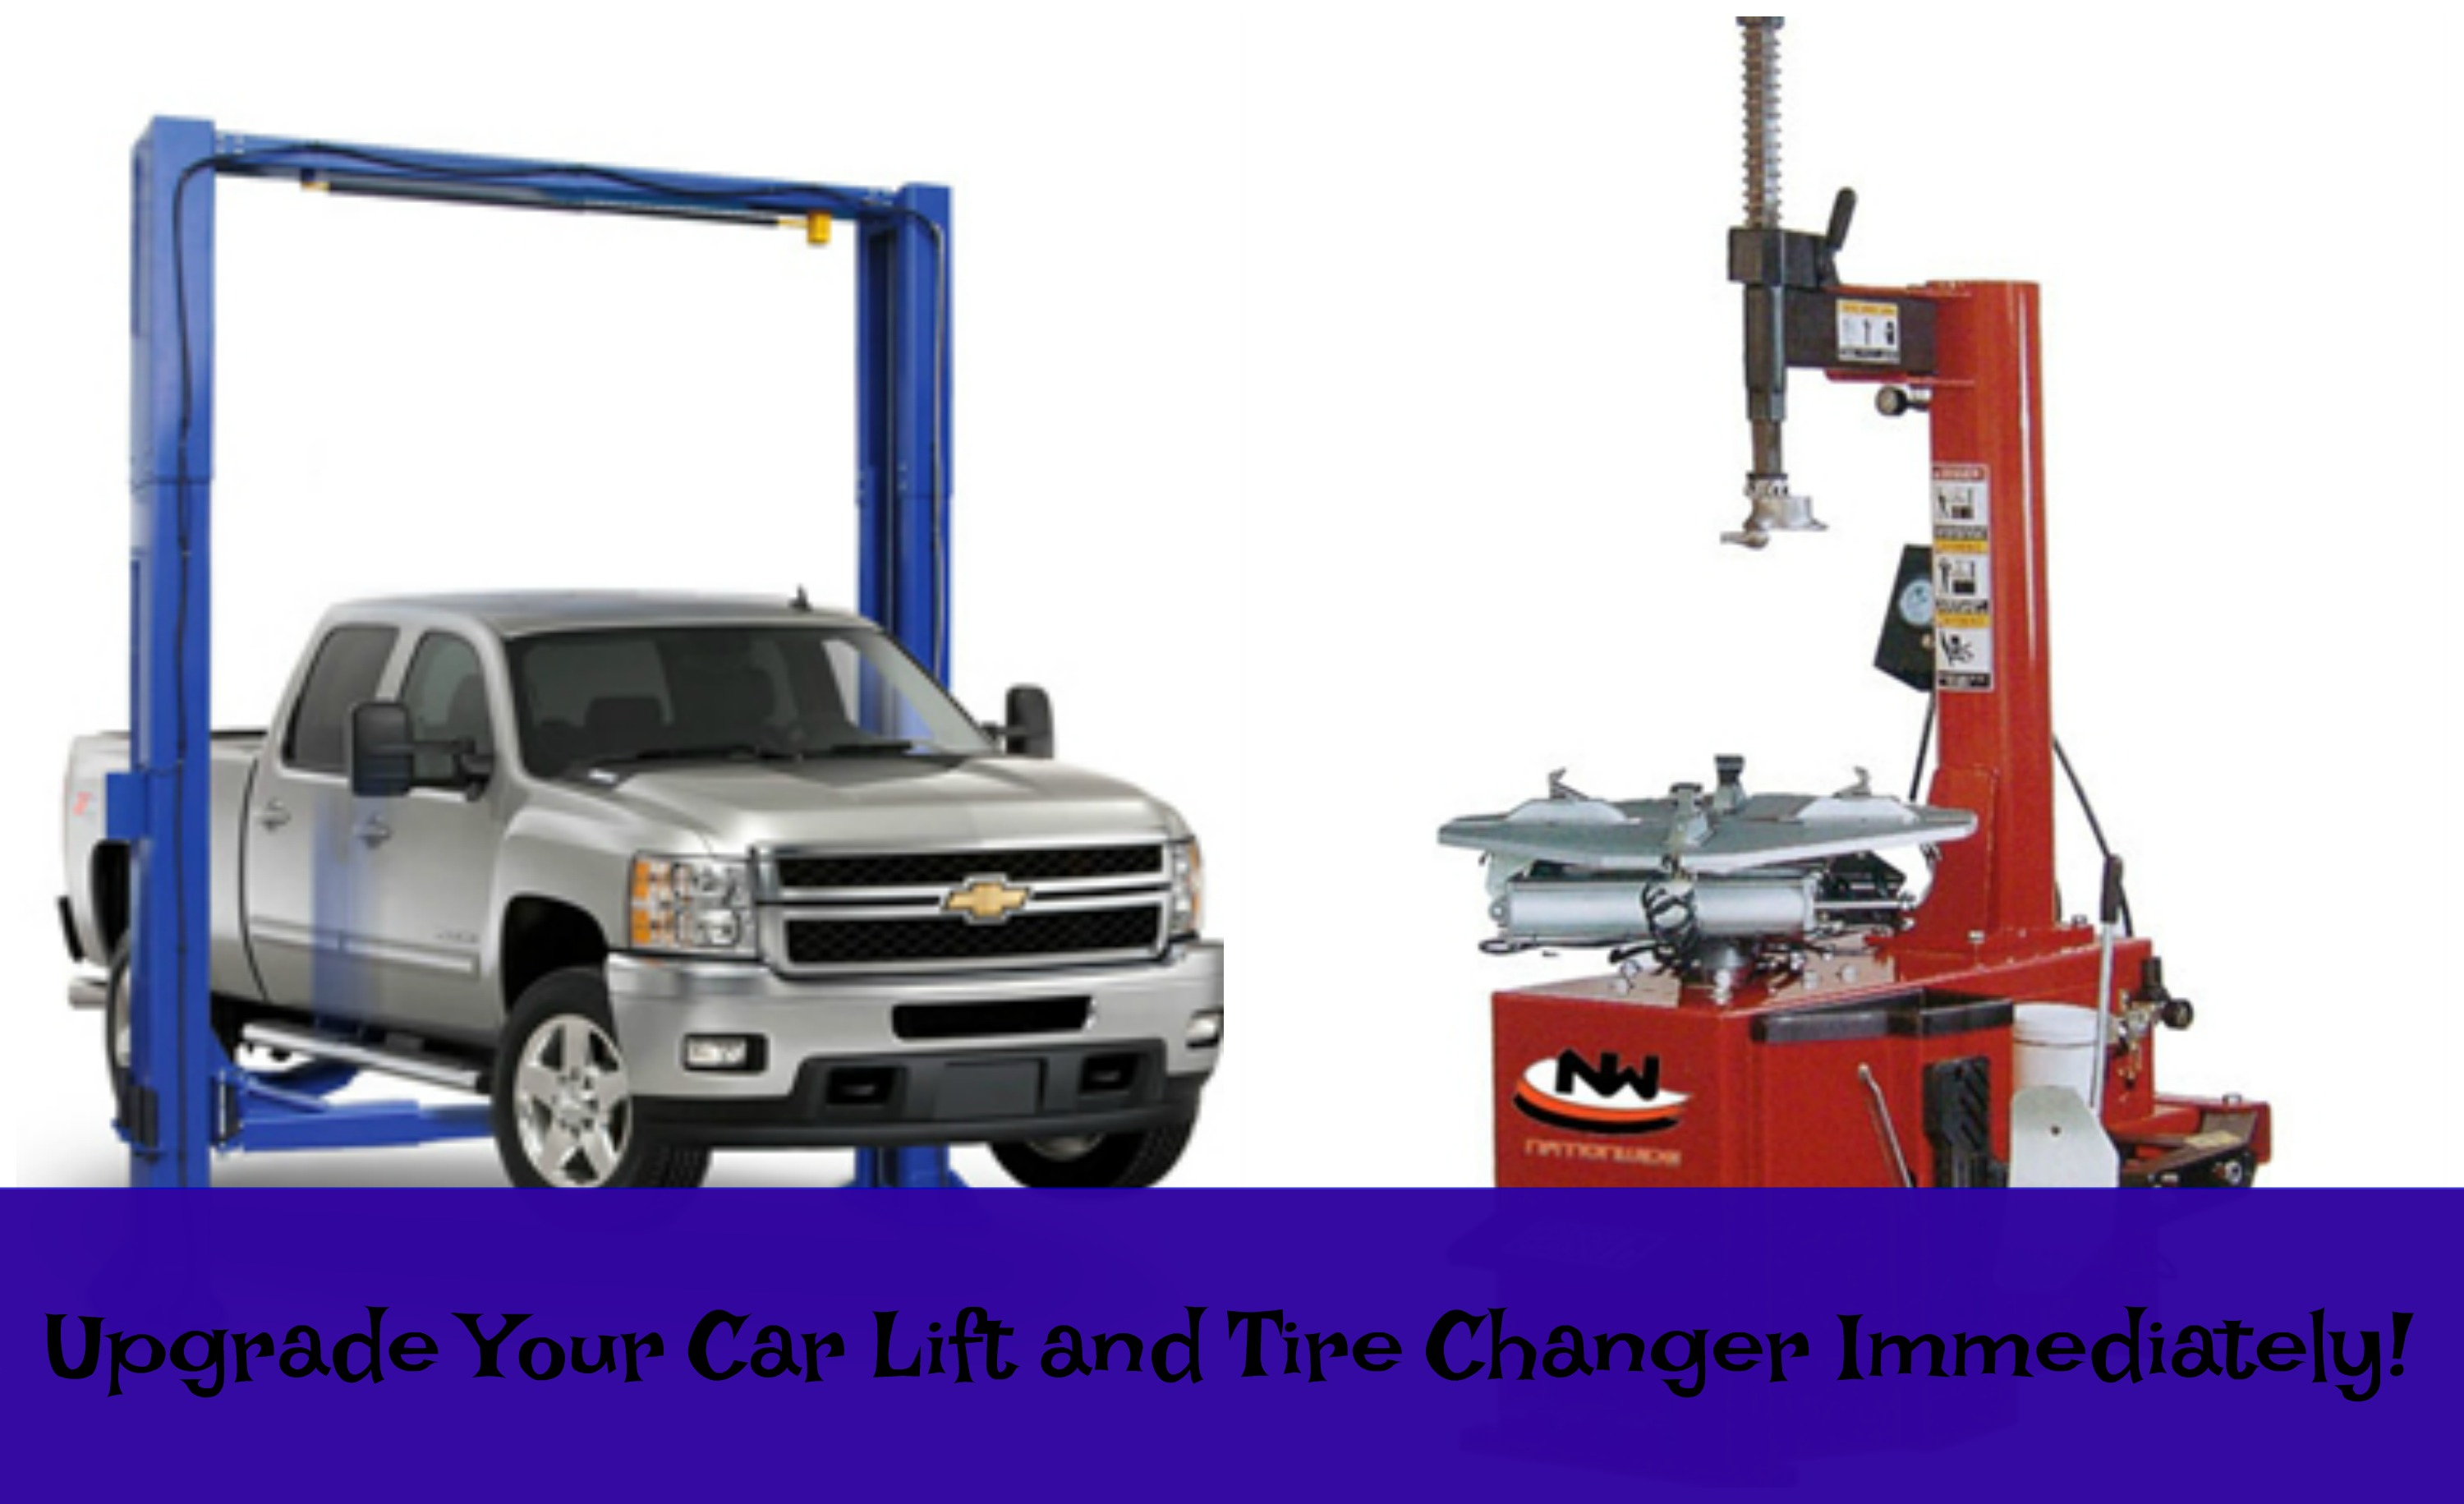 Upgrade Your Car Lift and Tire Changer Immediately!